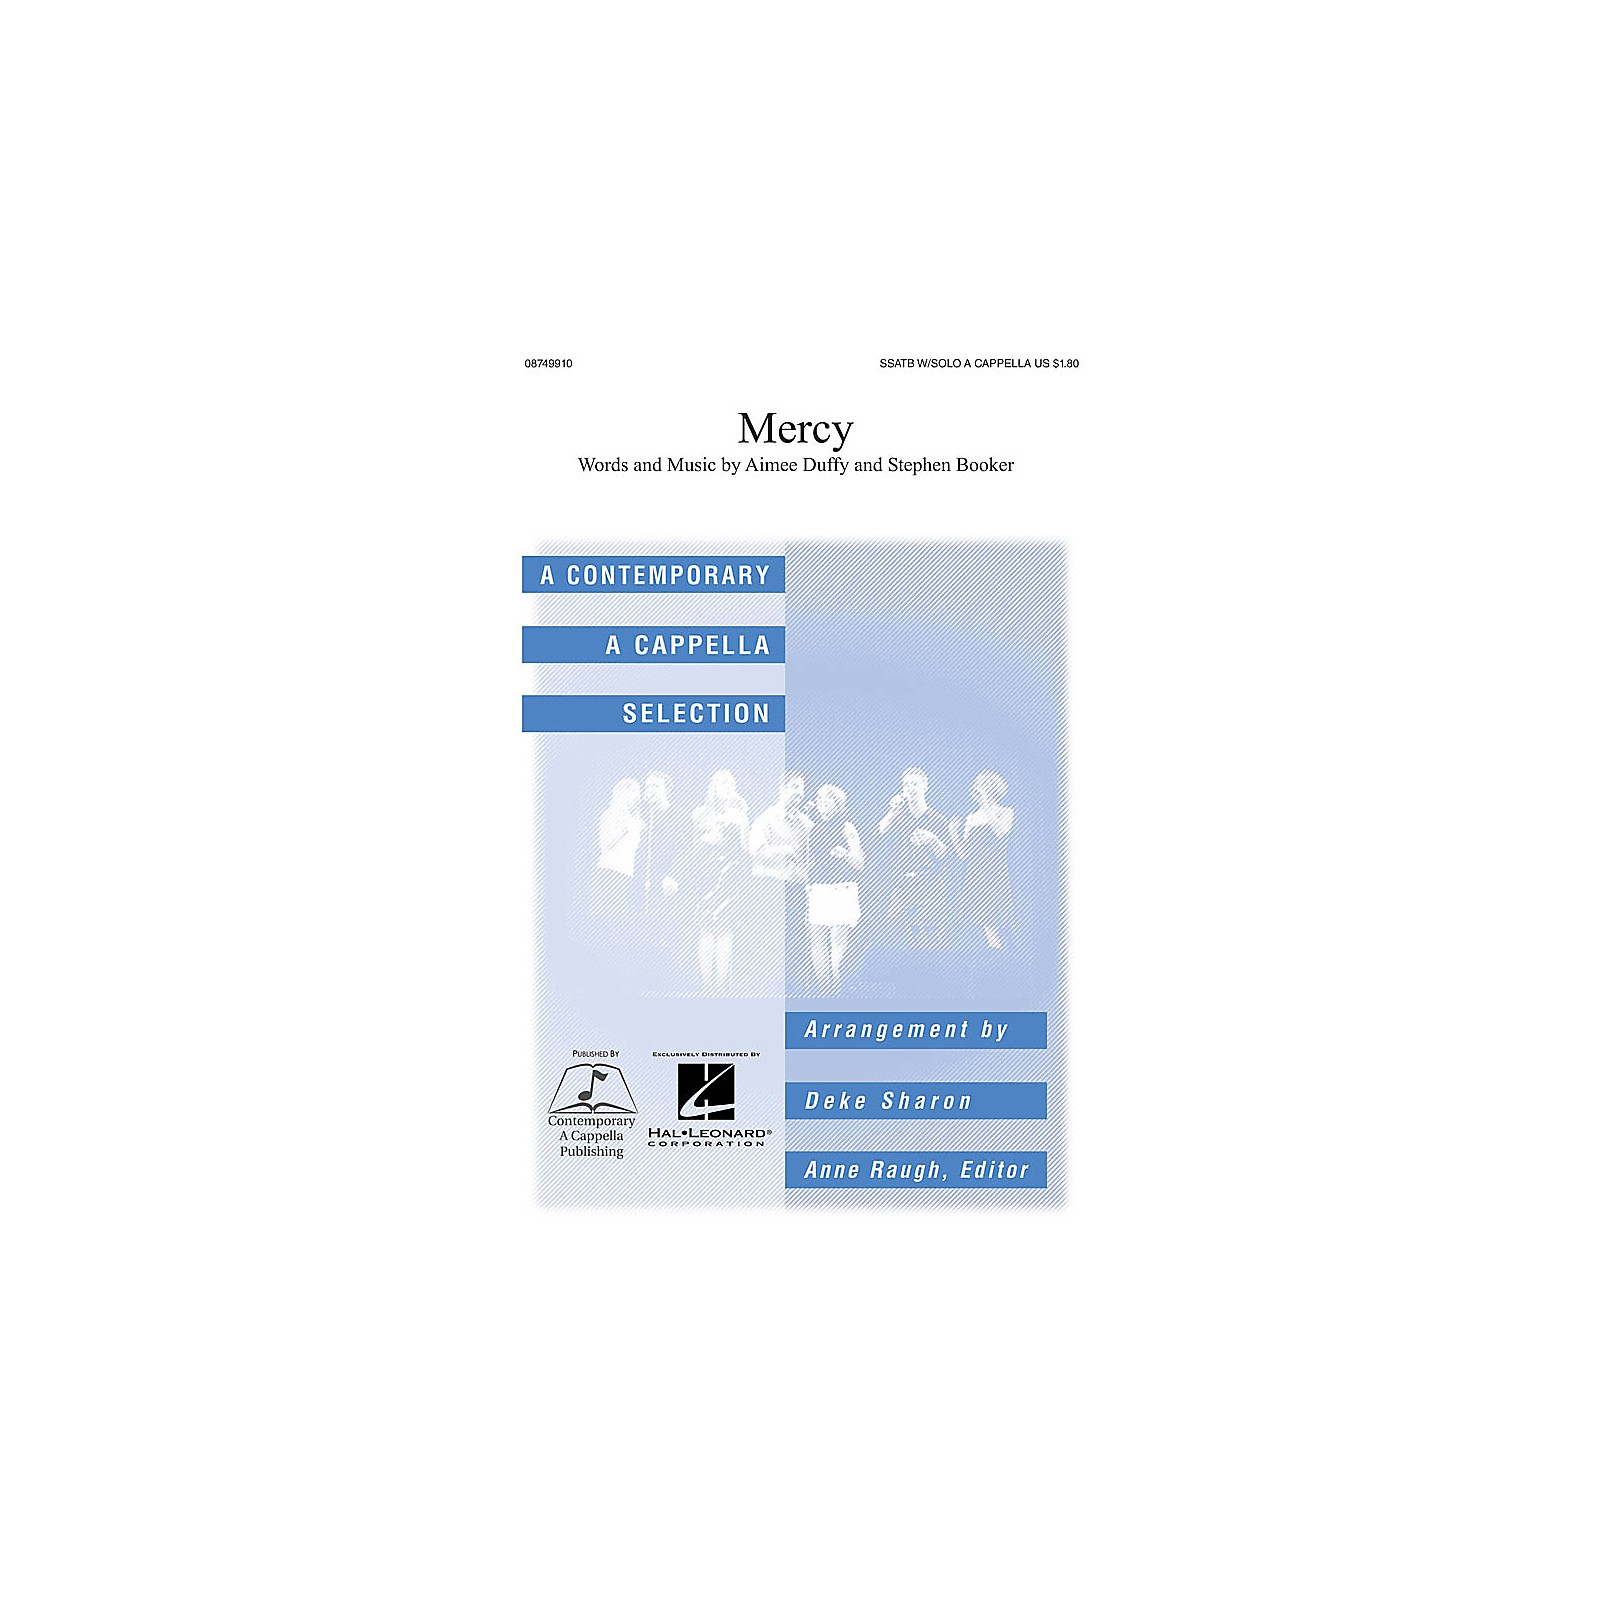 Contemporary A Cappella Publishing Mercy SSATB and Solo A Cappella by Duffy arranged by Deke Sharon